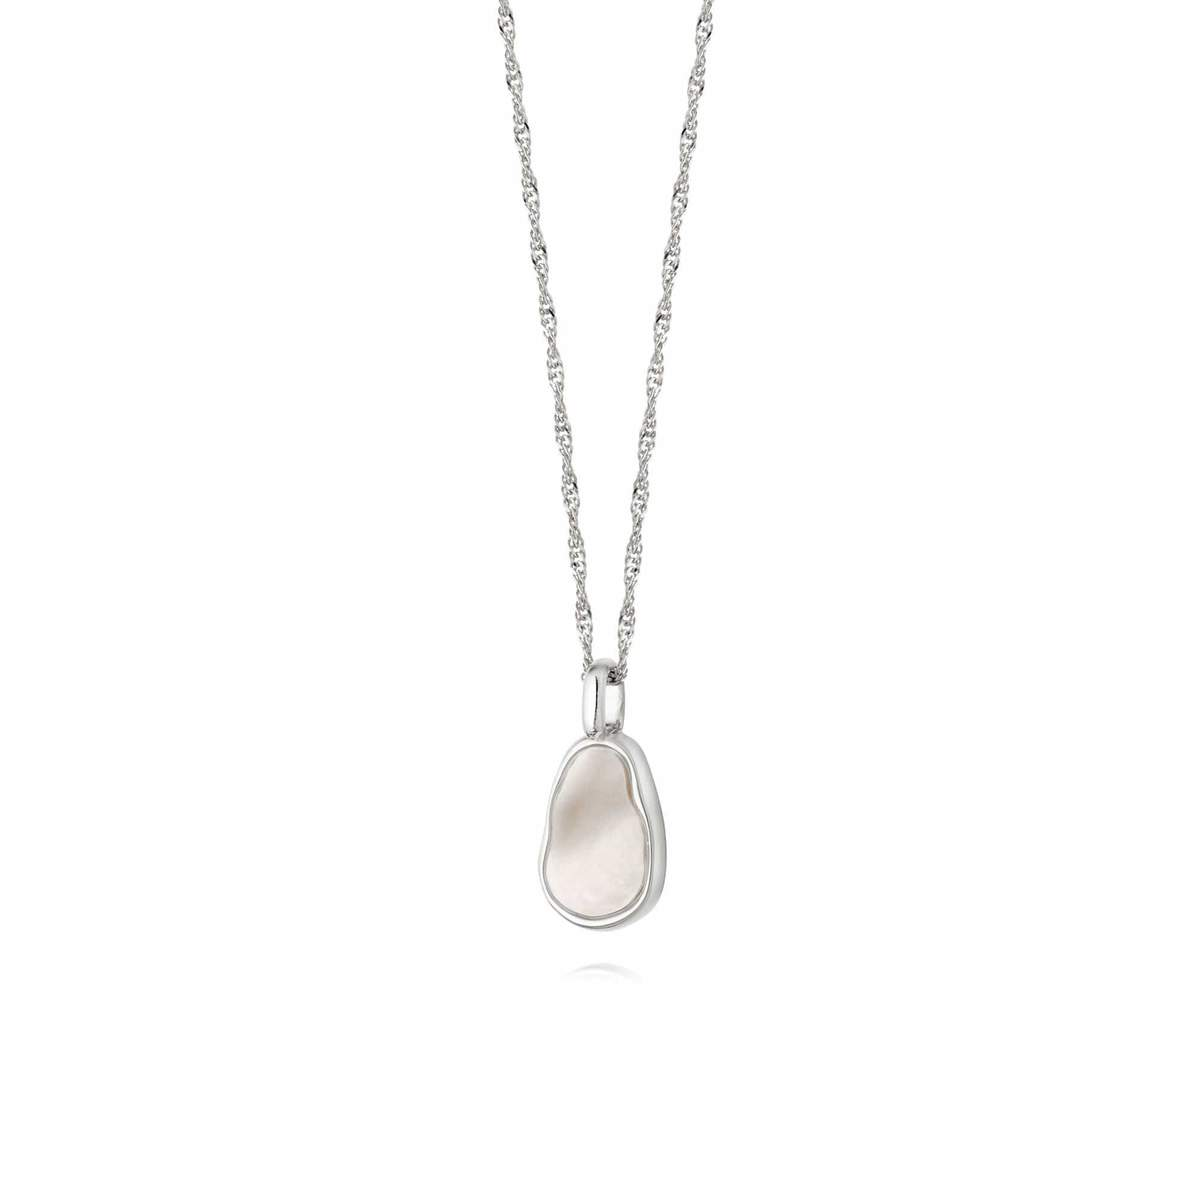 ISLA MOTHER OF PEARL NECKLACE - STERLING SILVER